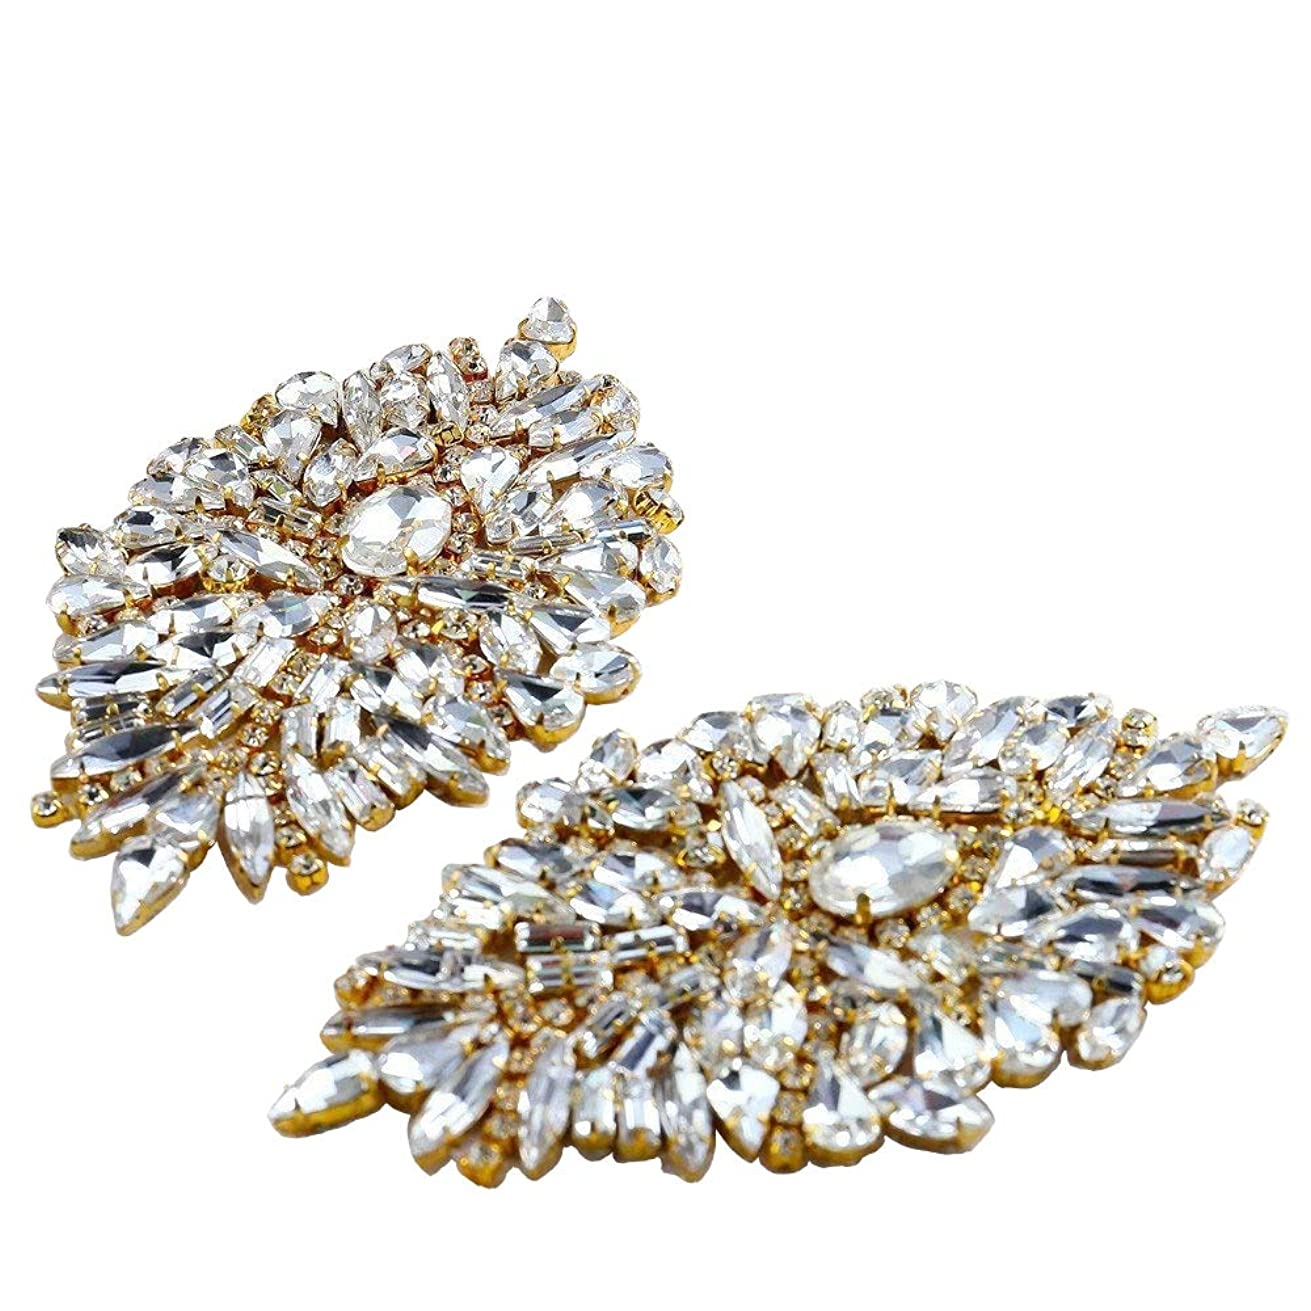 Rhinestone Iron On Patch Motif Applique DIY Crystals Patch Rhinestone Hot Fix Applique Sewing Appliques for Shoes Pack - 2 Pieces-Gold (4.1